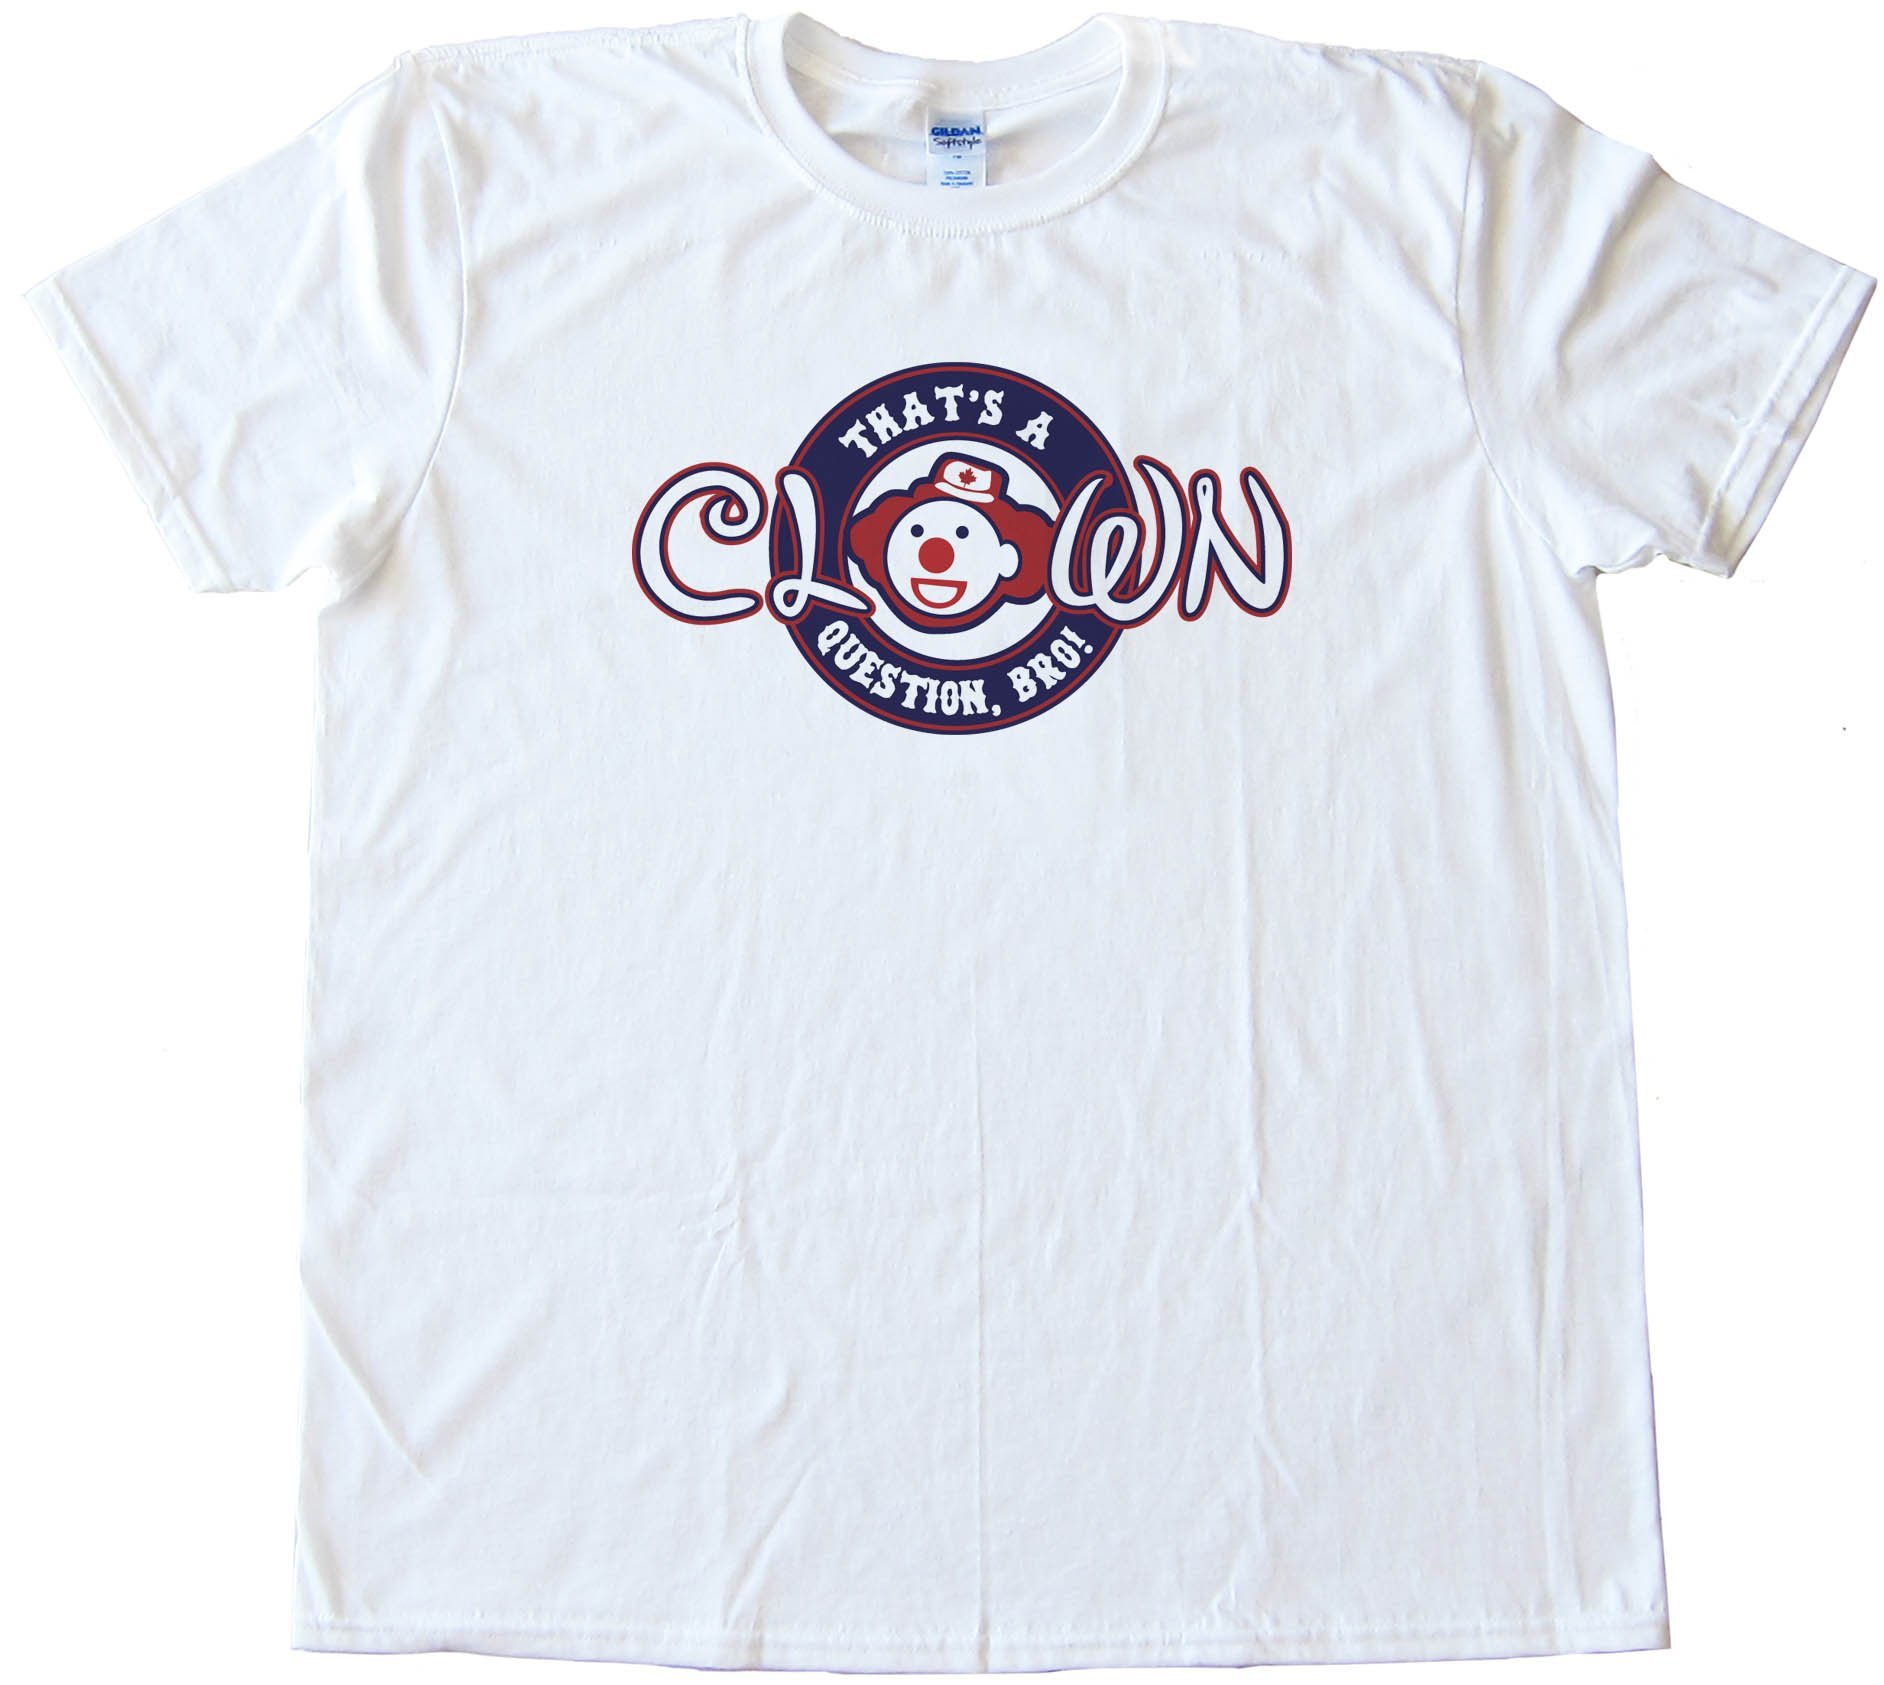 Clown Question Bro - Bryce Harper - Tee Shirt